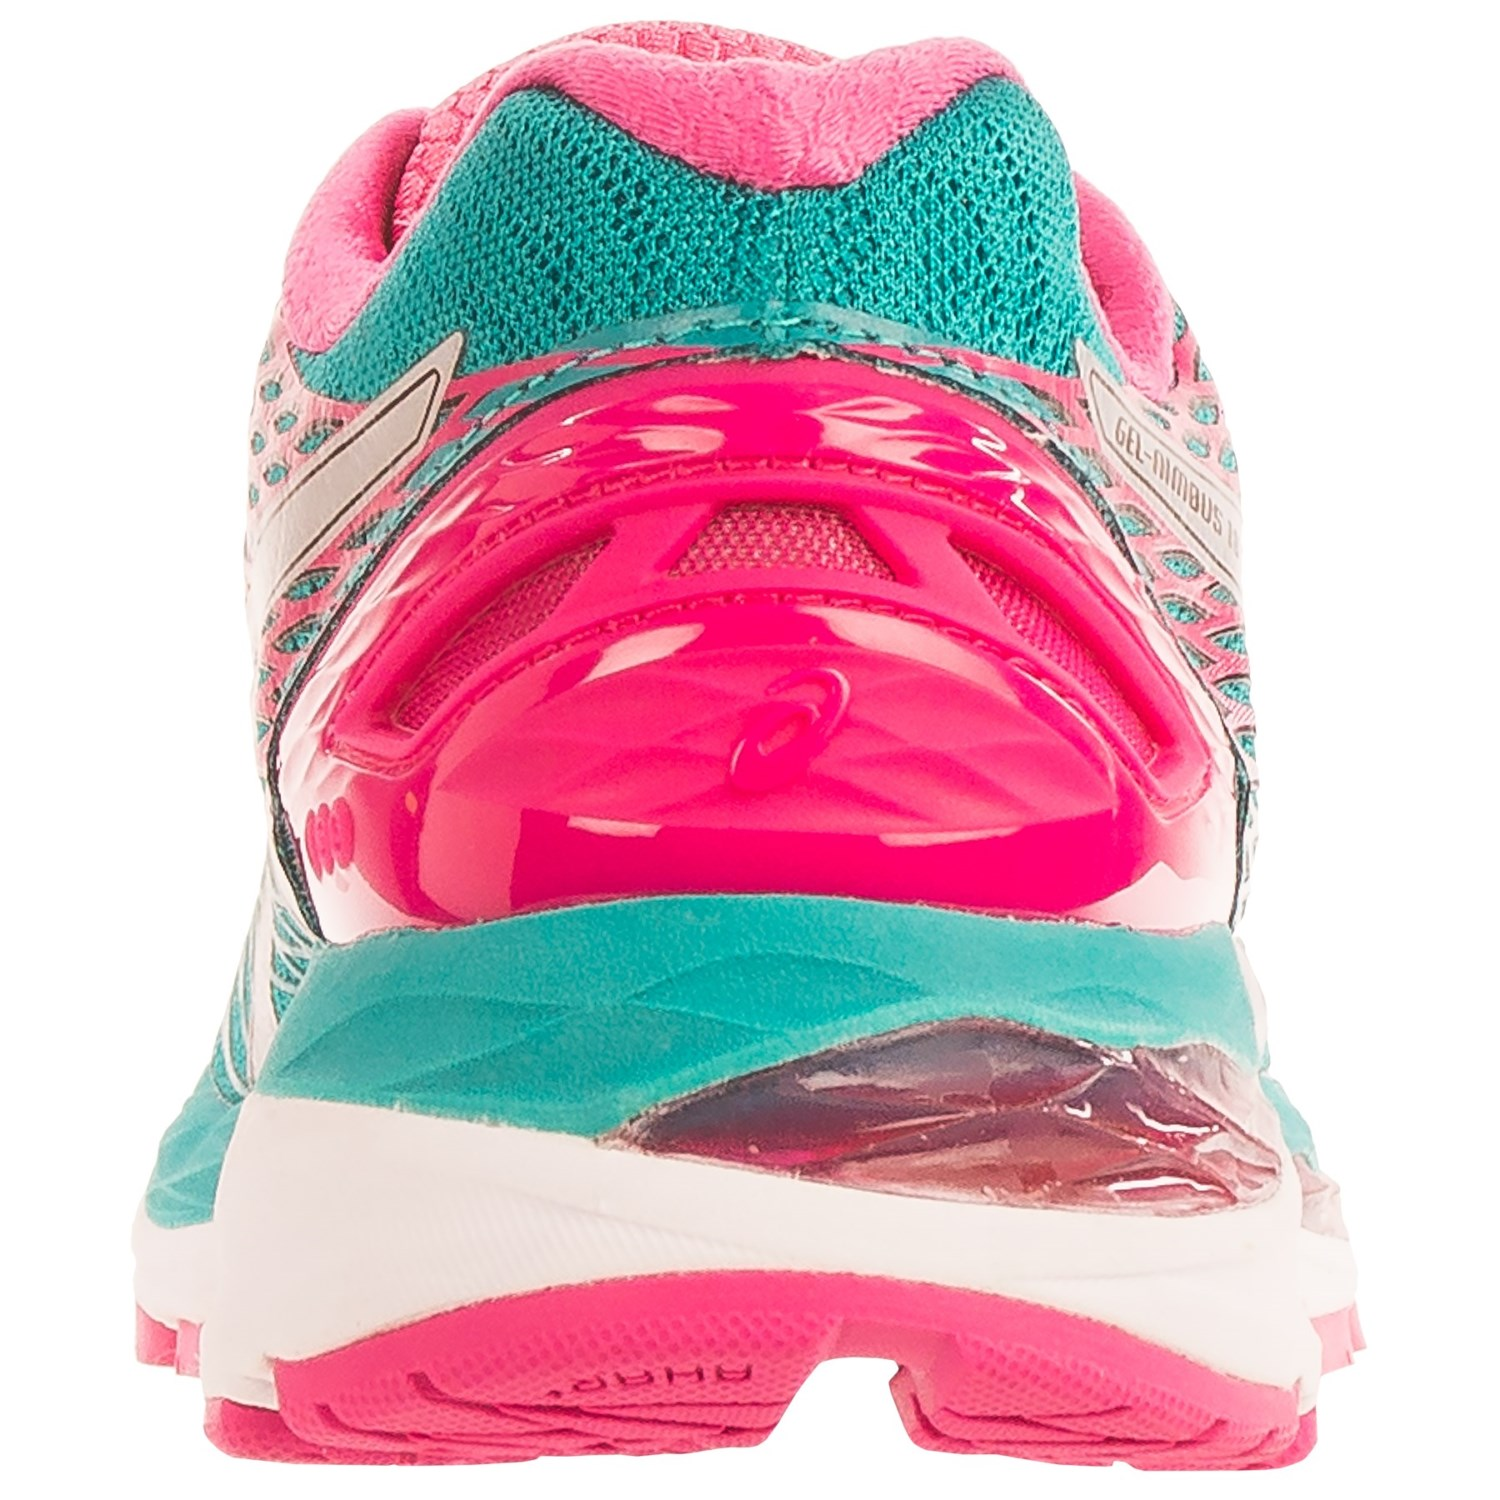 Asics Gel Nimbus 18 Women's Running Shoes rebel